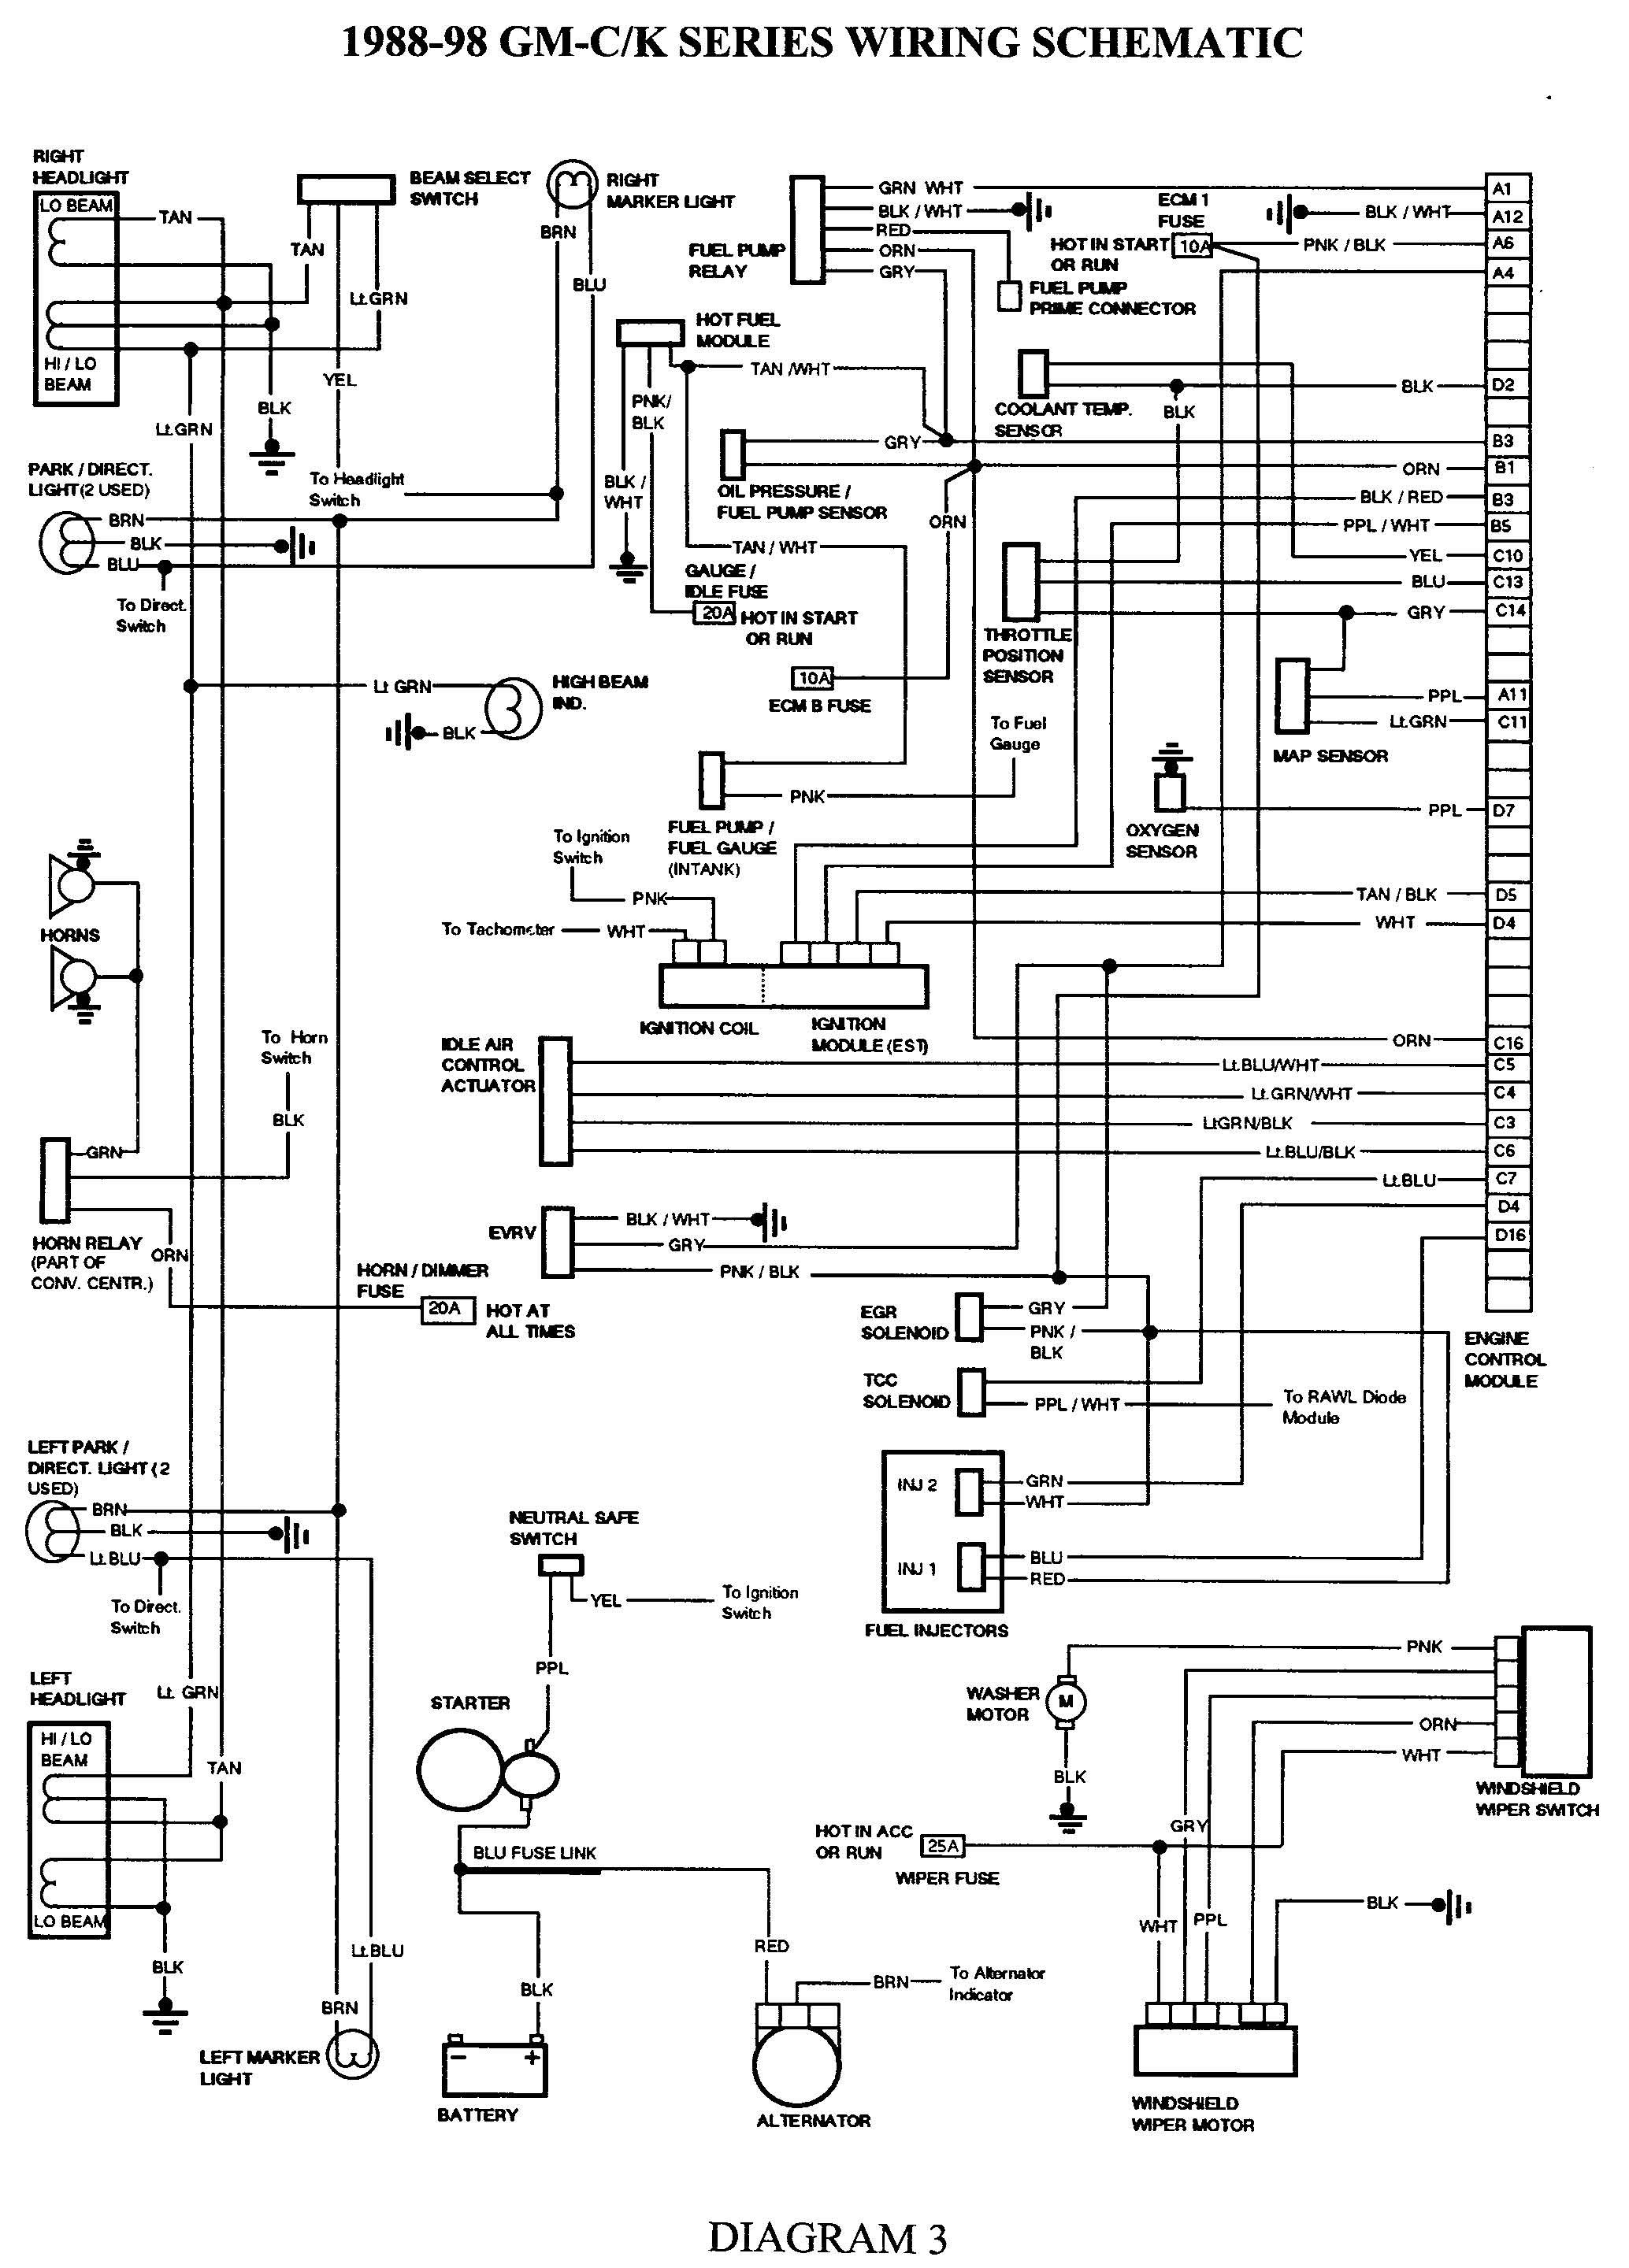 2001 chevy cavalier wiring diagram for spark plugs archive of 2002 chevy cavalier radio wiring diagram 2001 chevy cavalier wiring diagram for spark plugs images gallery 98 chevy wiring diagram blog about wiring diagrams rh clares driving co uk